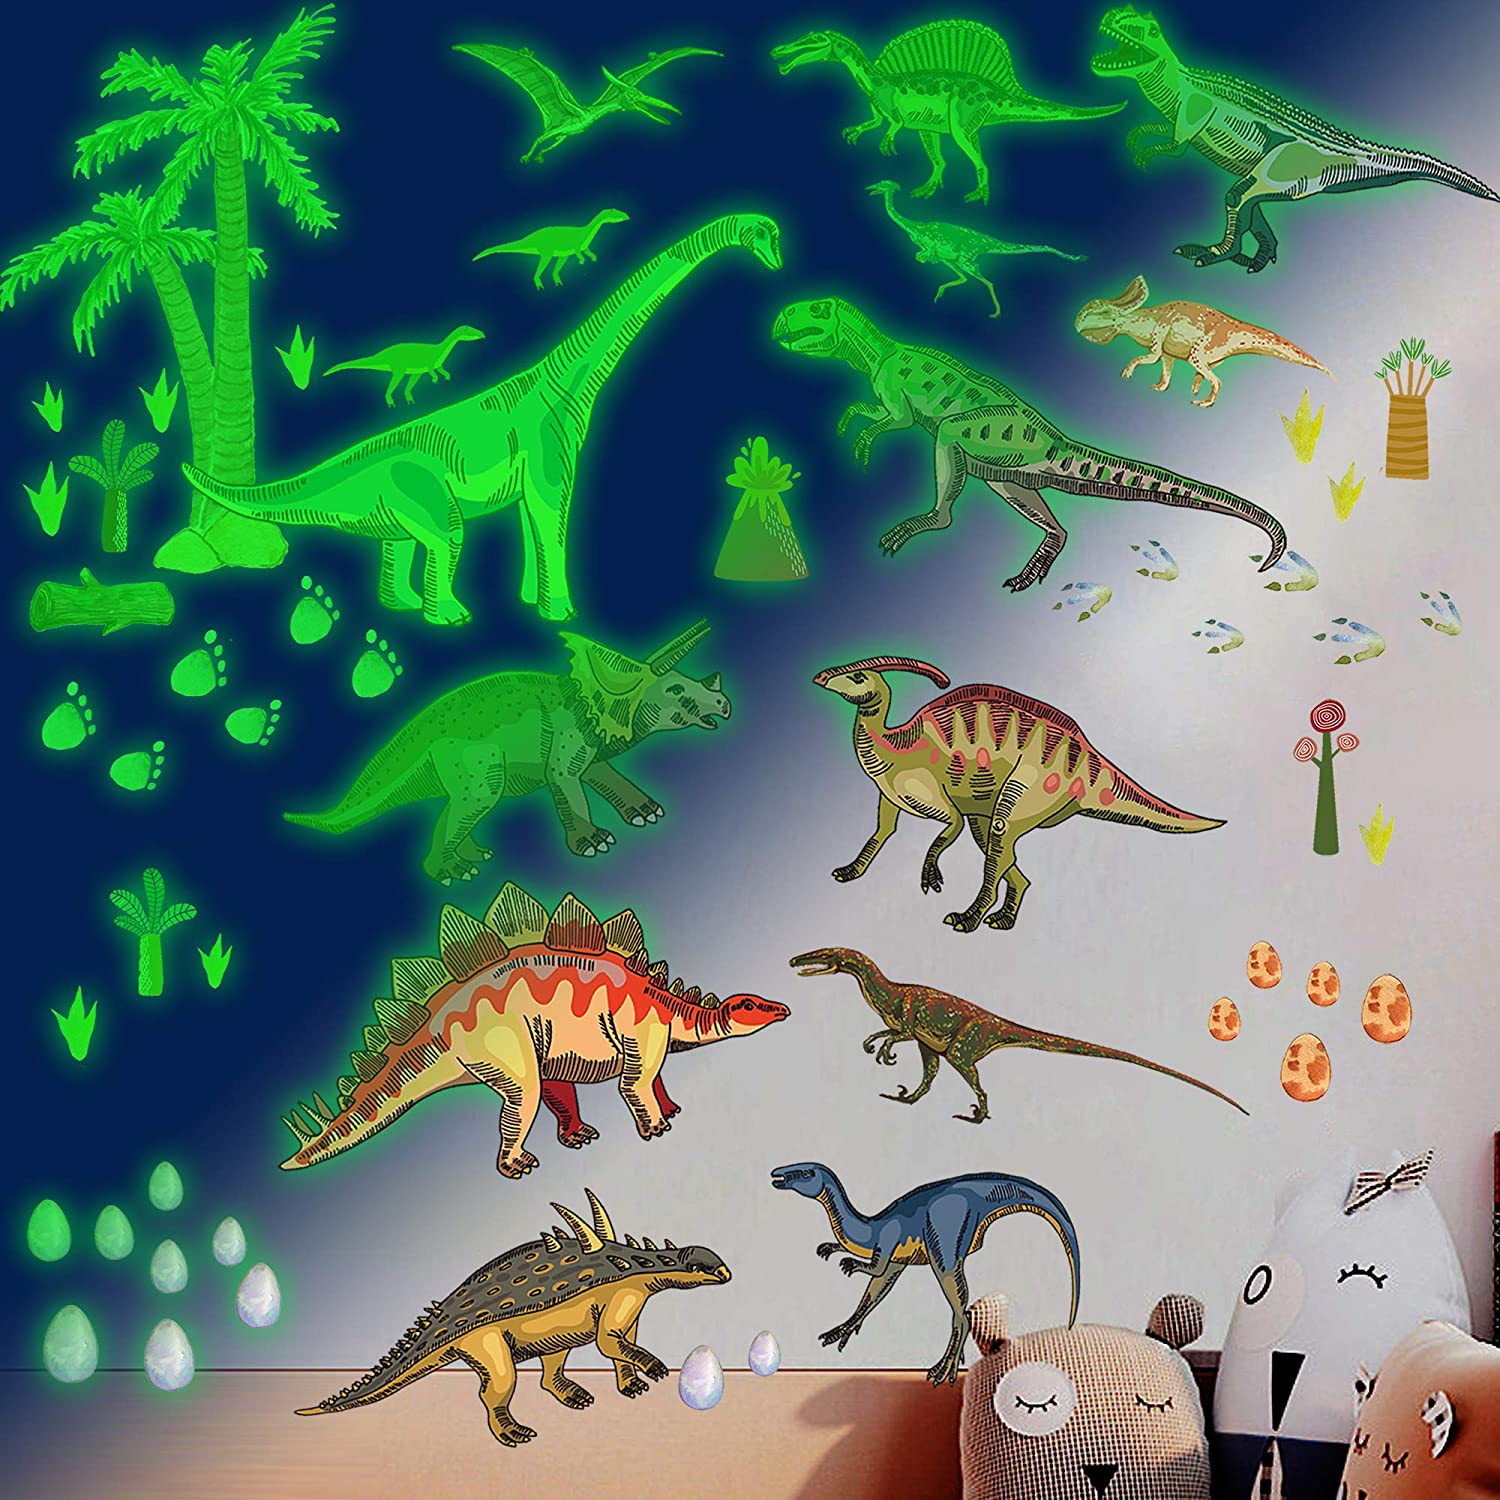 Dinosaur Wall Decals for Boys Room,Glow in the Dark Dinosaur Wall Decals stickers for kids Bedroom,Large Dinosaur Wall Decor Decorations for Nursery, Living Room,Classroom,Kids Birthday Christmas Gift